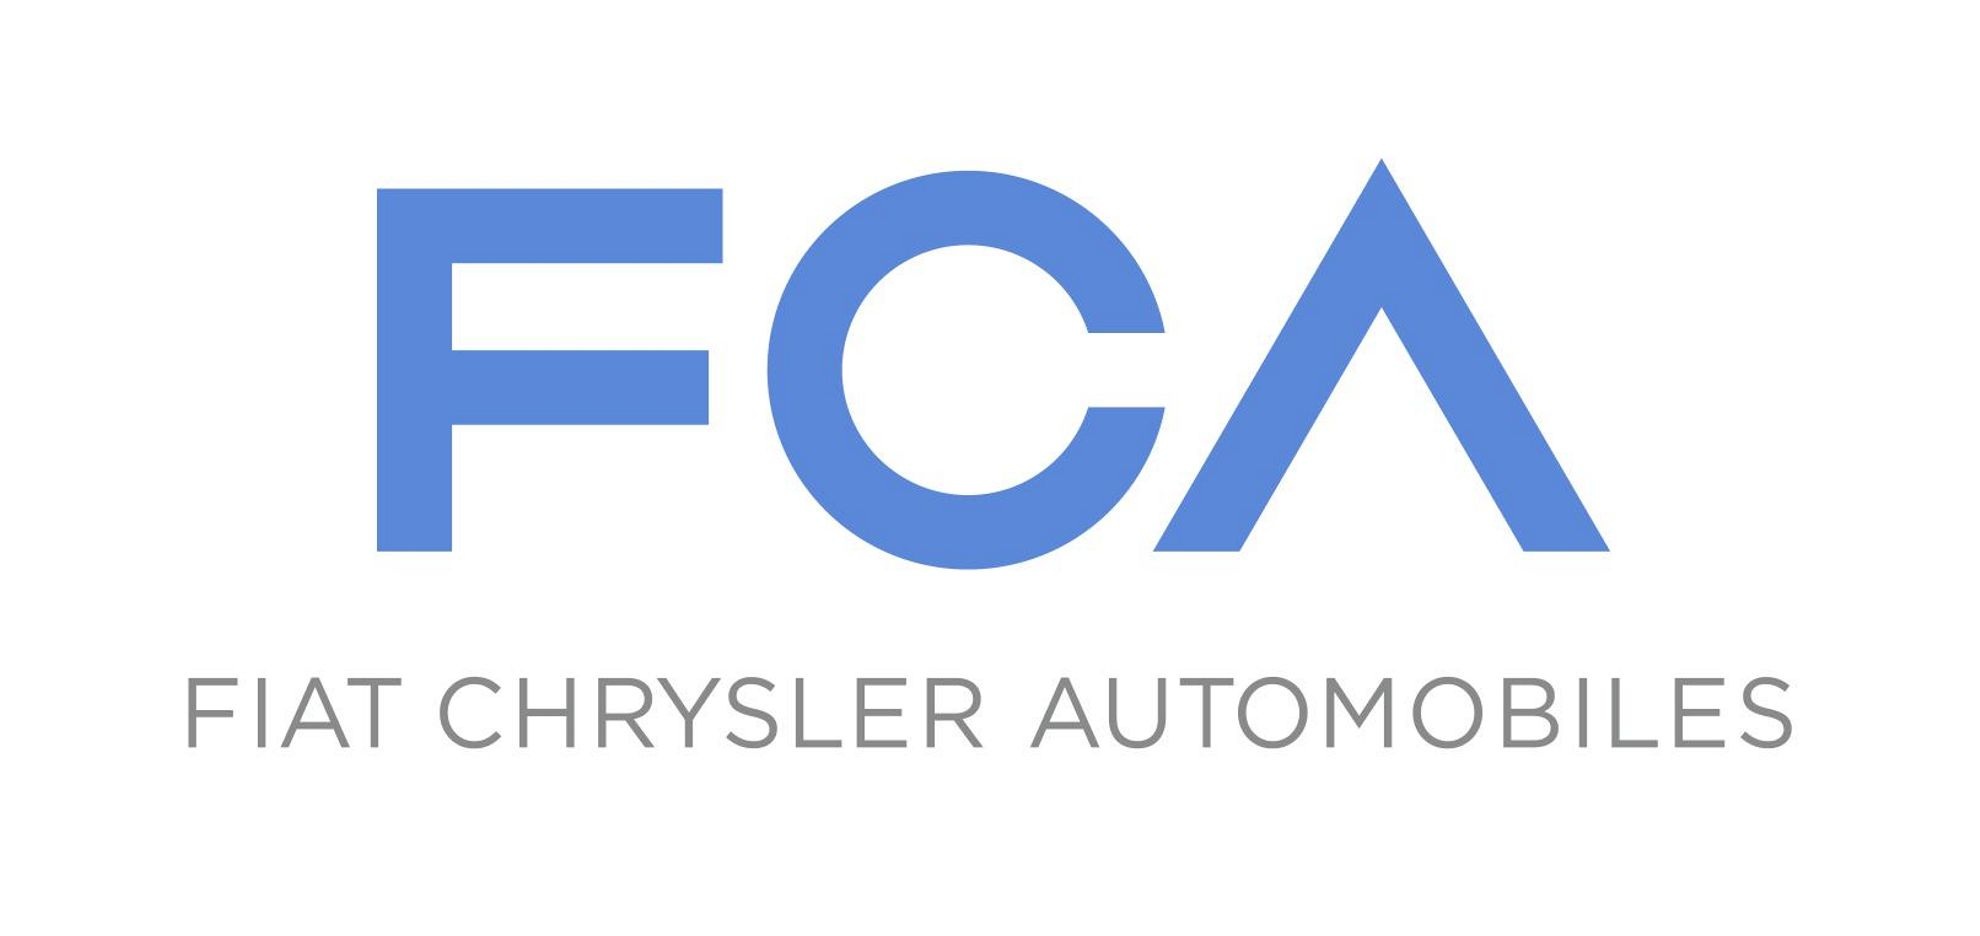 chrysler auto logo with - photo #47